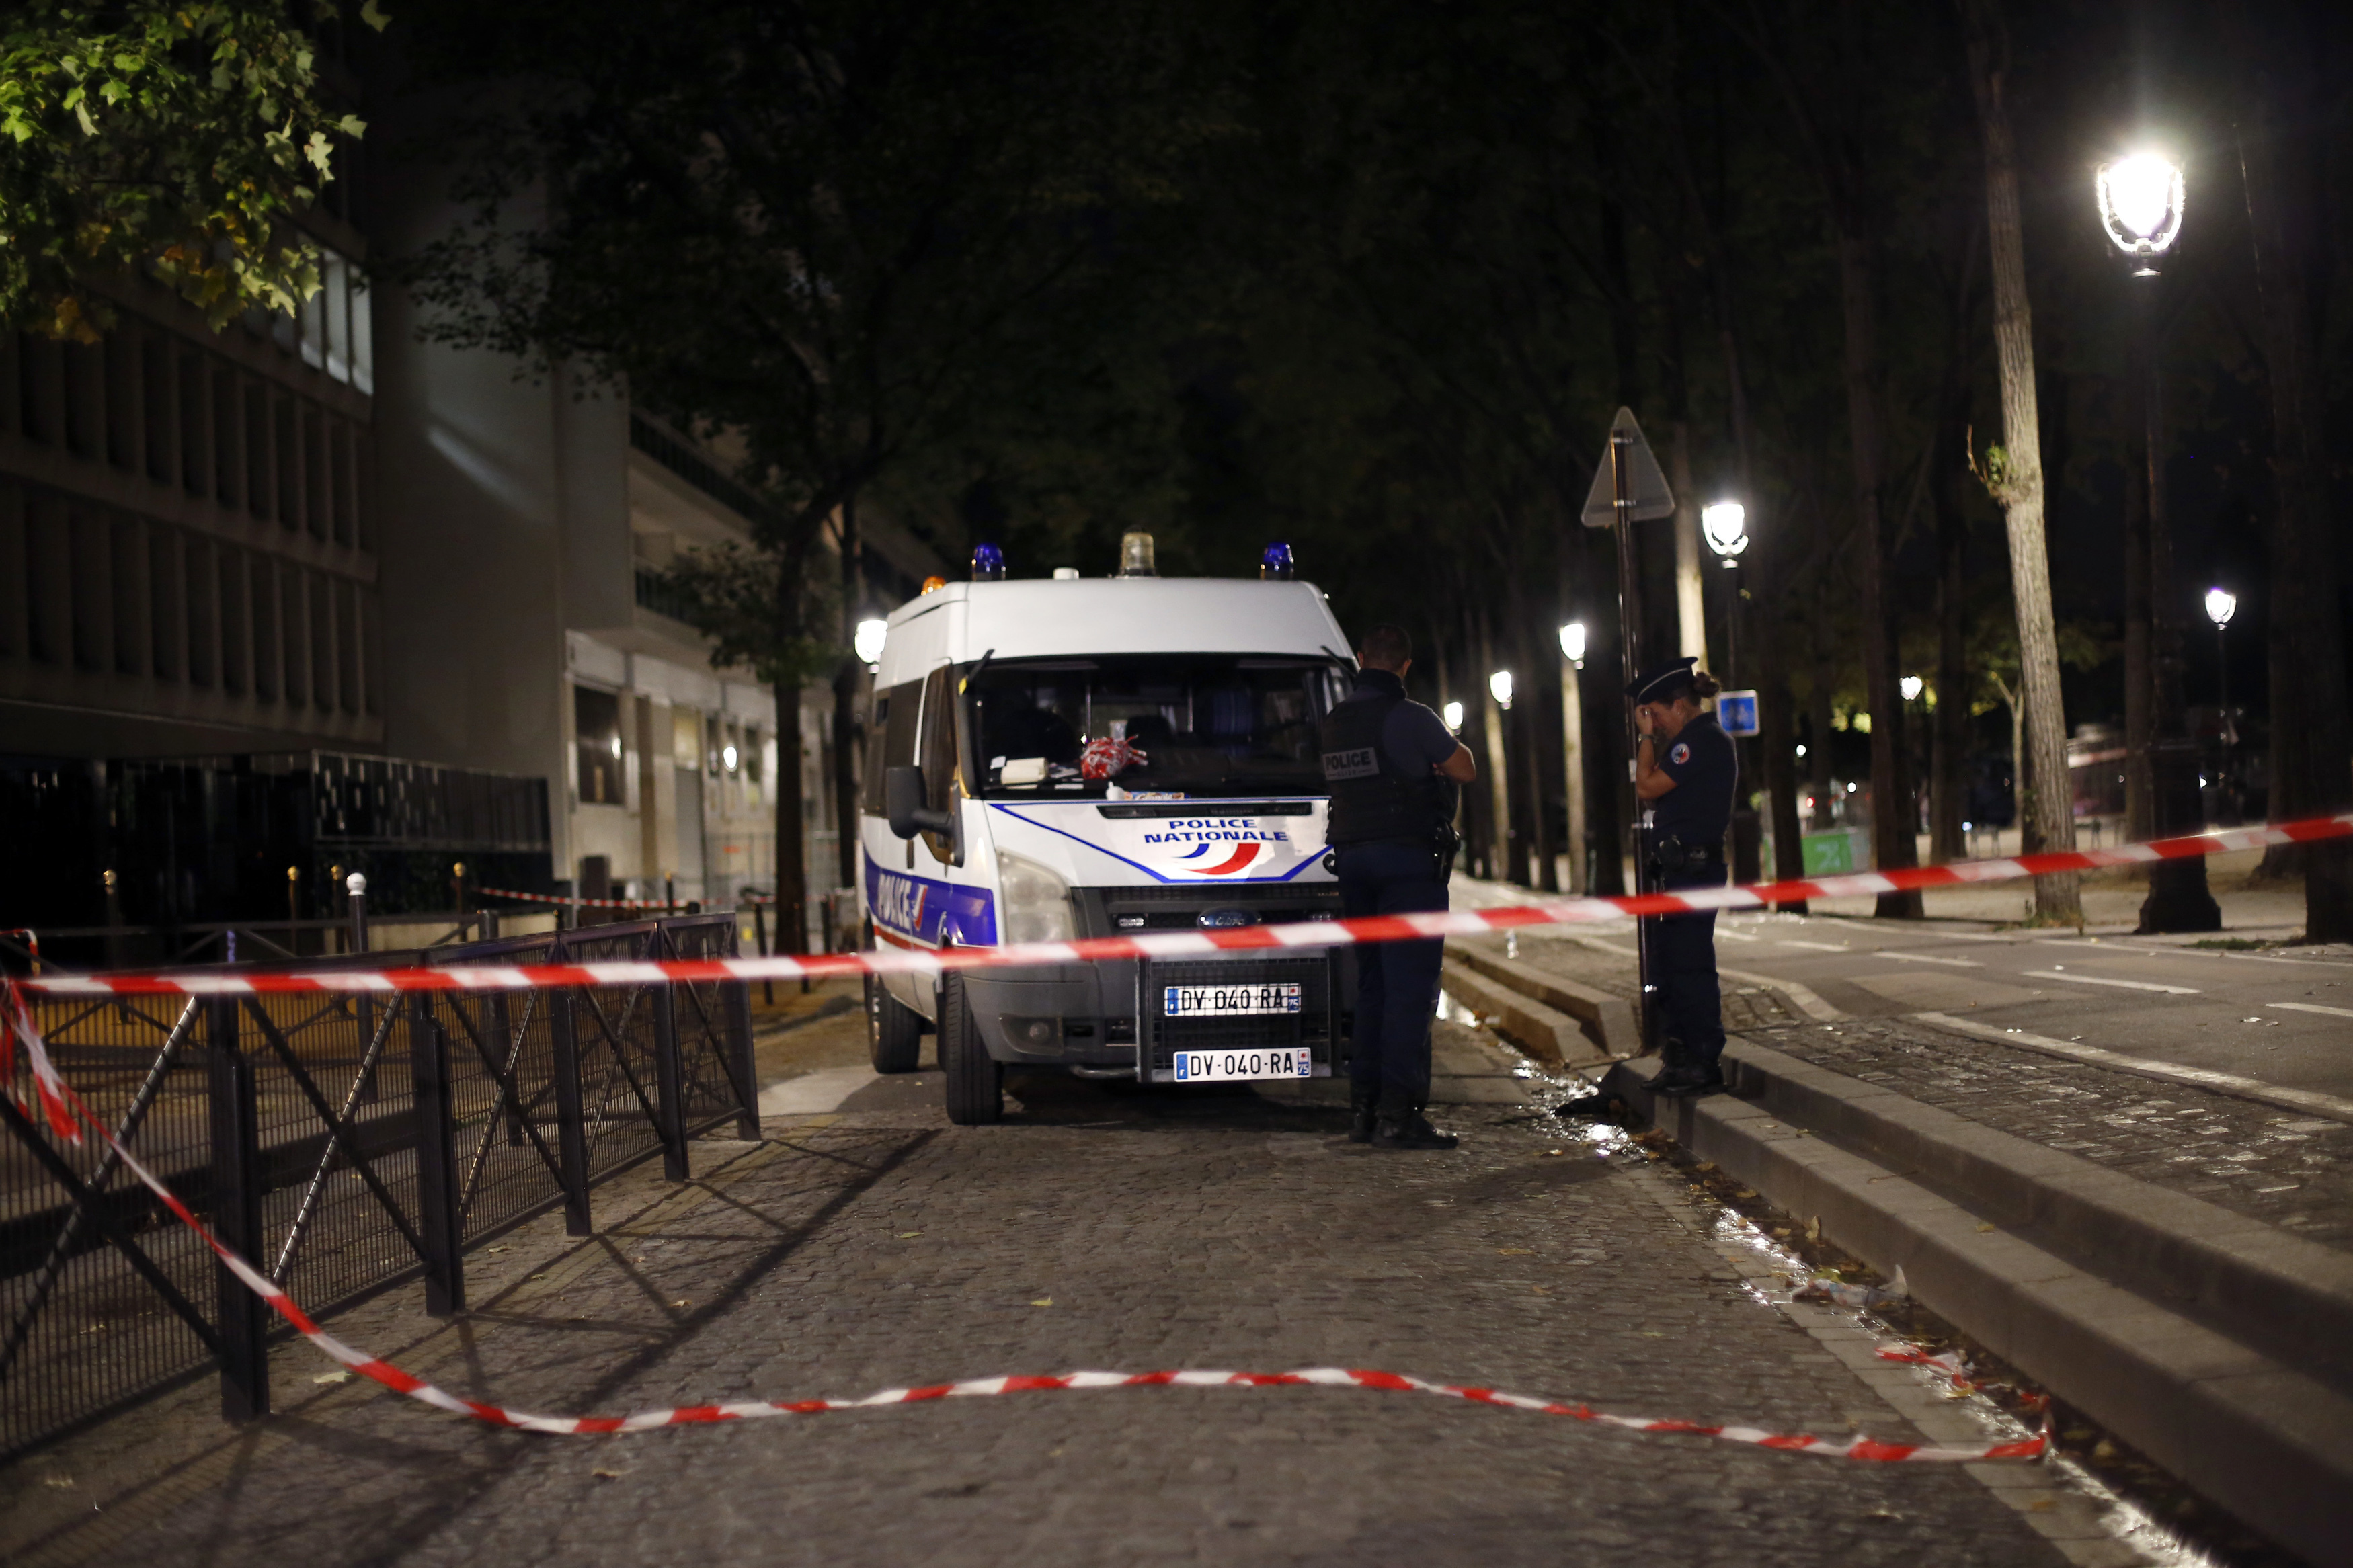 Two British tourists among seven people injured in Paris knife attack